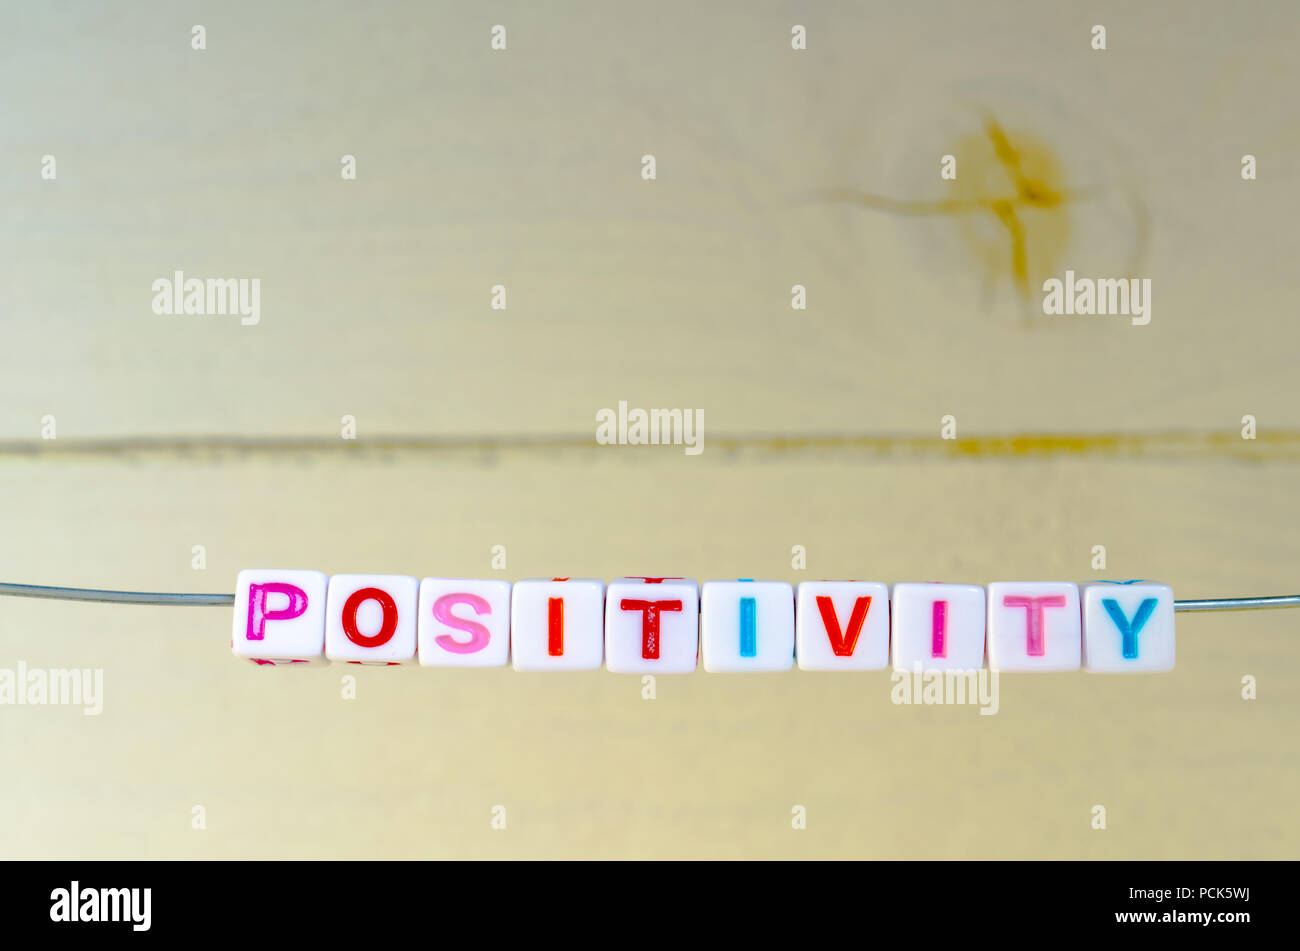 A Studio Photograph of Alphabetical Beads Suspended on a Wire Spelling 'Positivity' - Stock Image